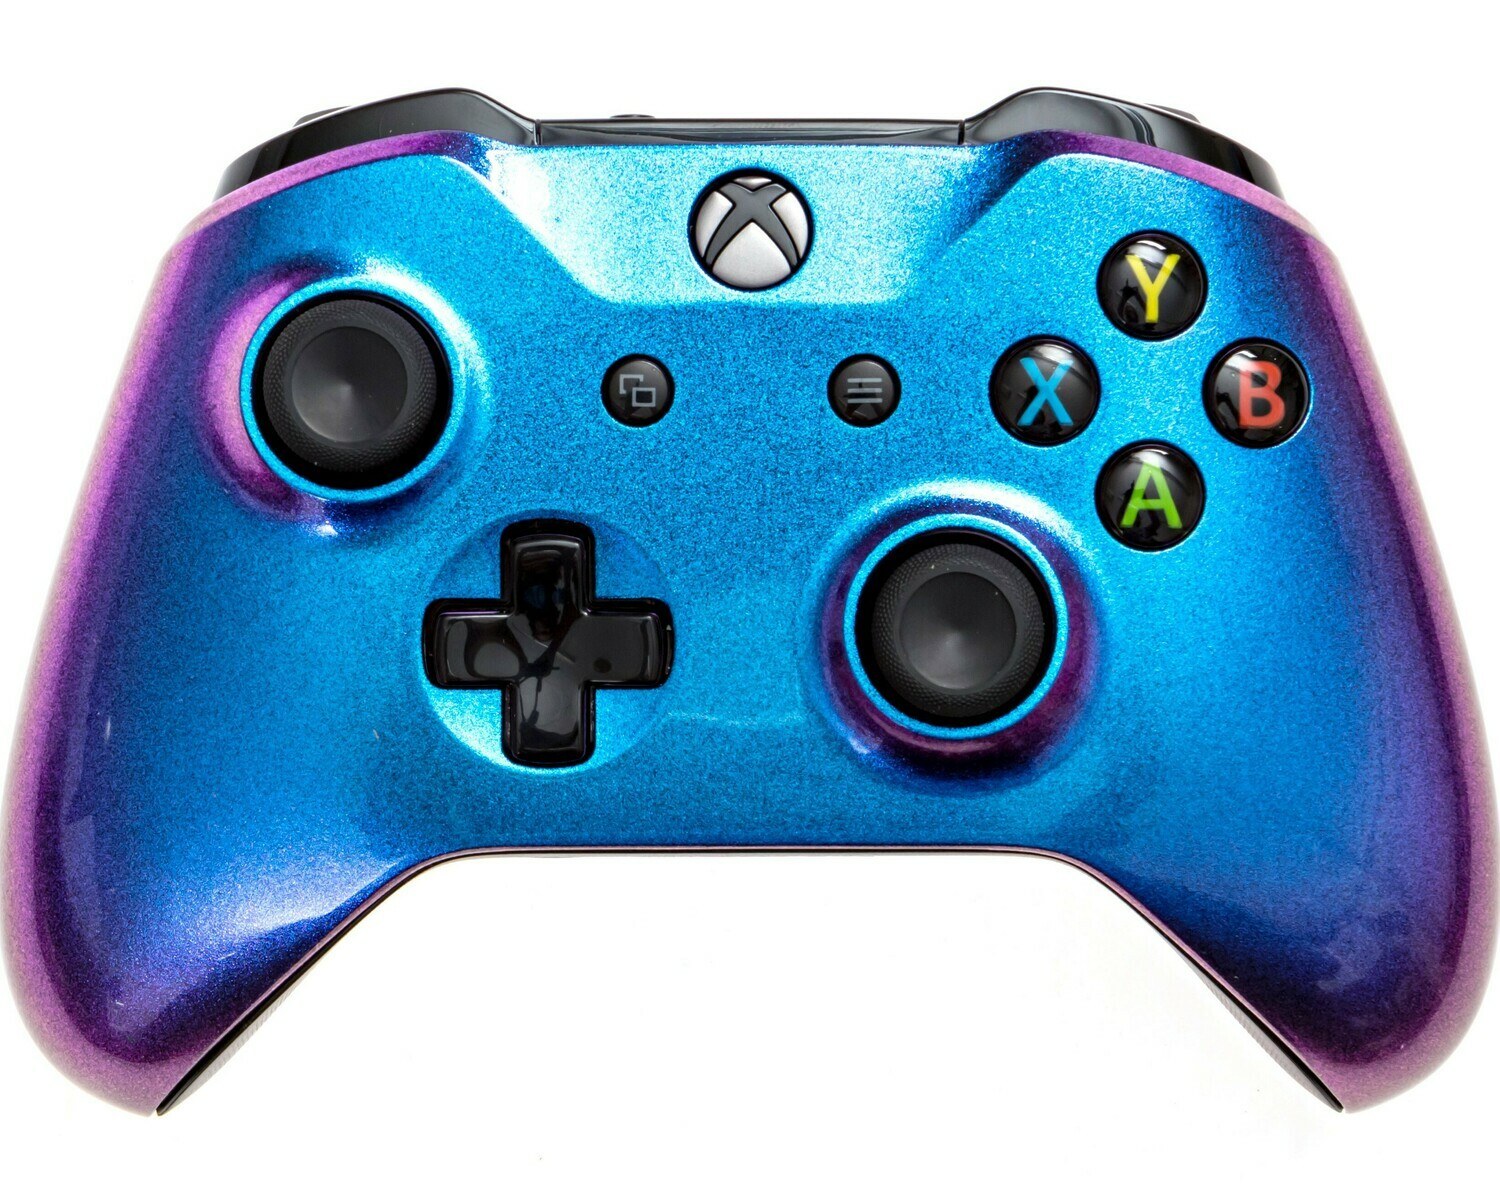 10,000 Mode Mod Controllers Xbox One Color Changing Controller Xb1 Chameleon